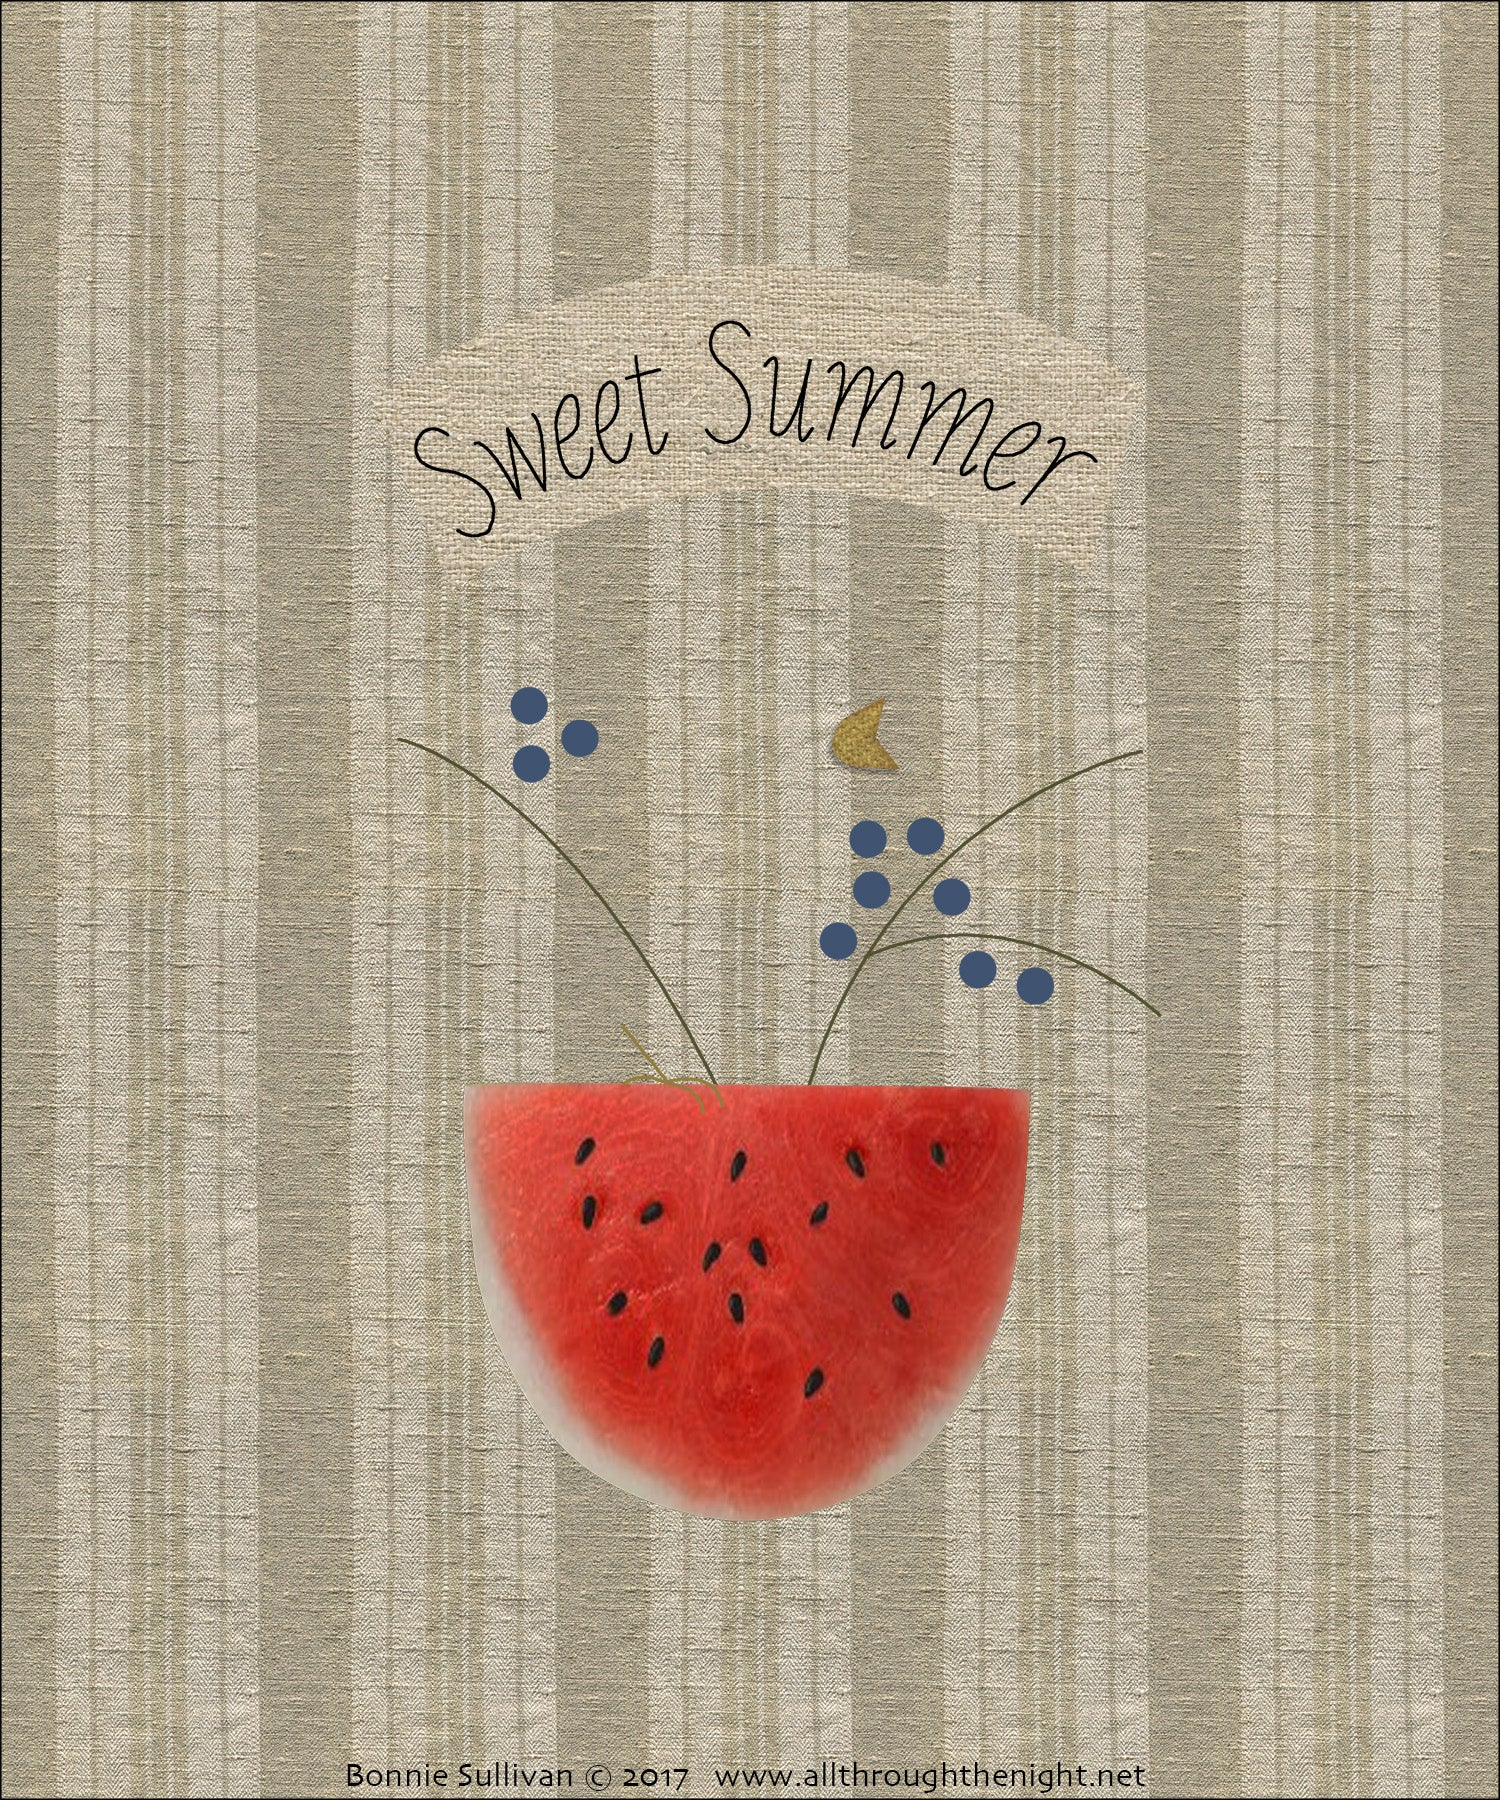 F1727 - Sweet Summer (July) Preprinted Fabric